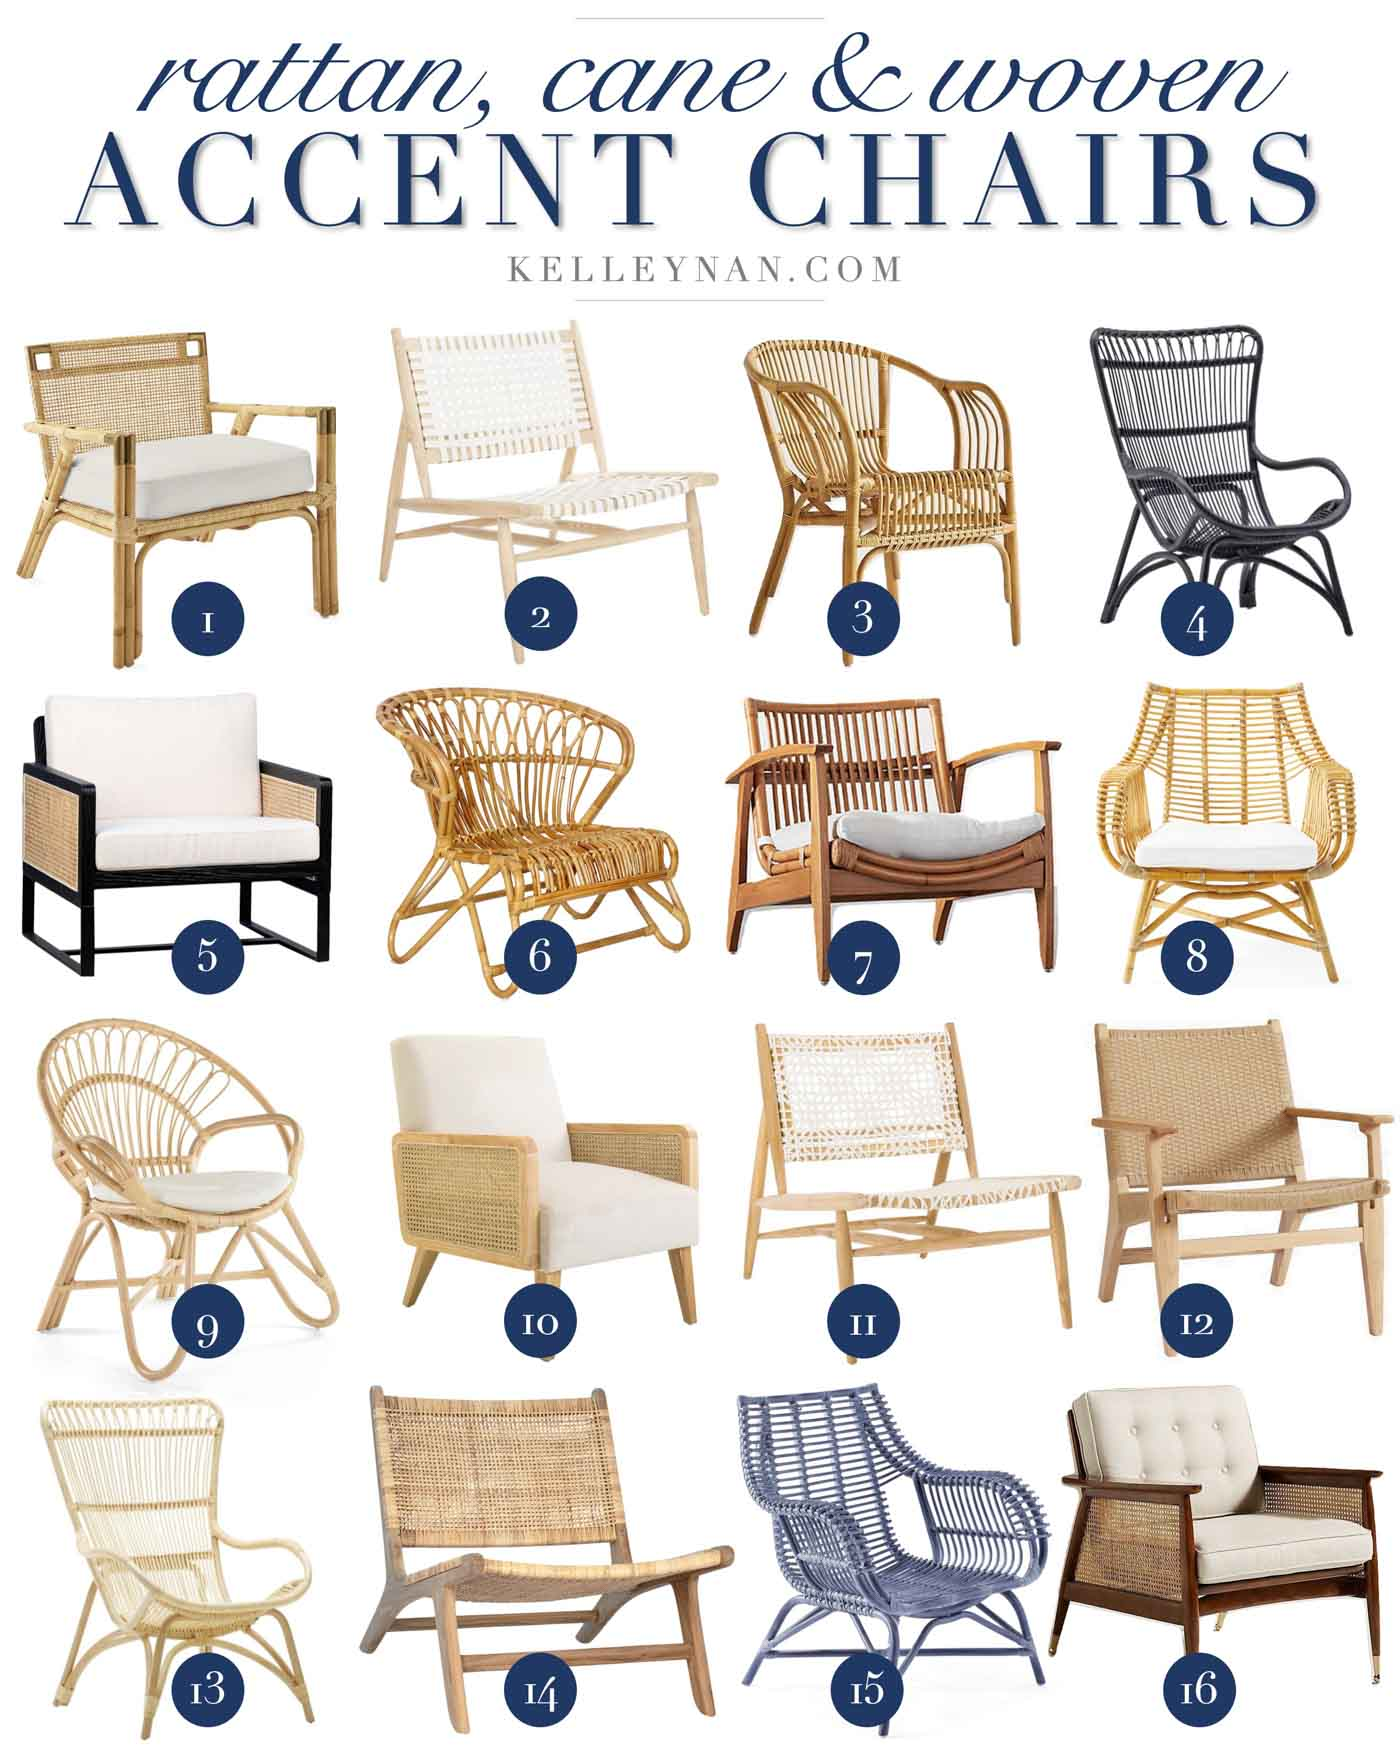 Best Rattan, Cane and Woven Accent Chairs for All Budgets!